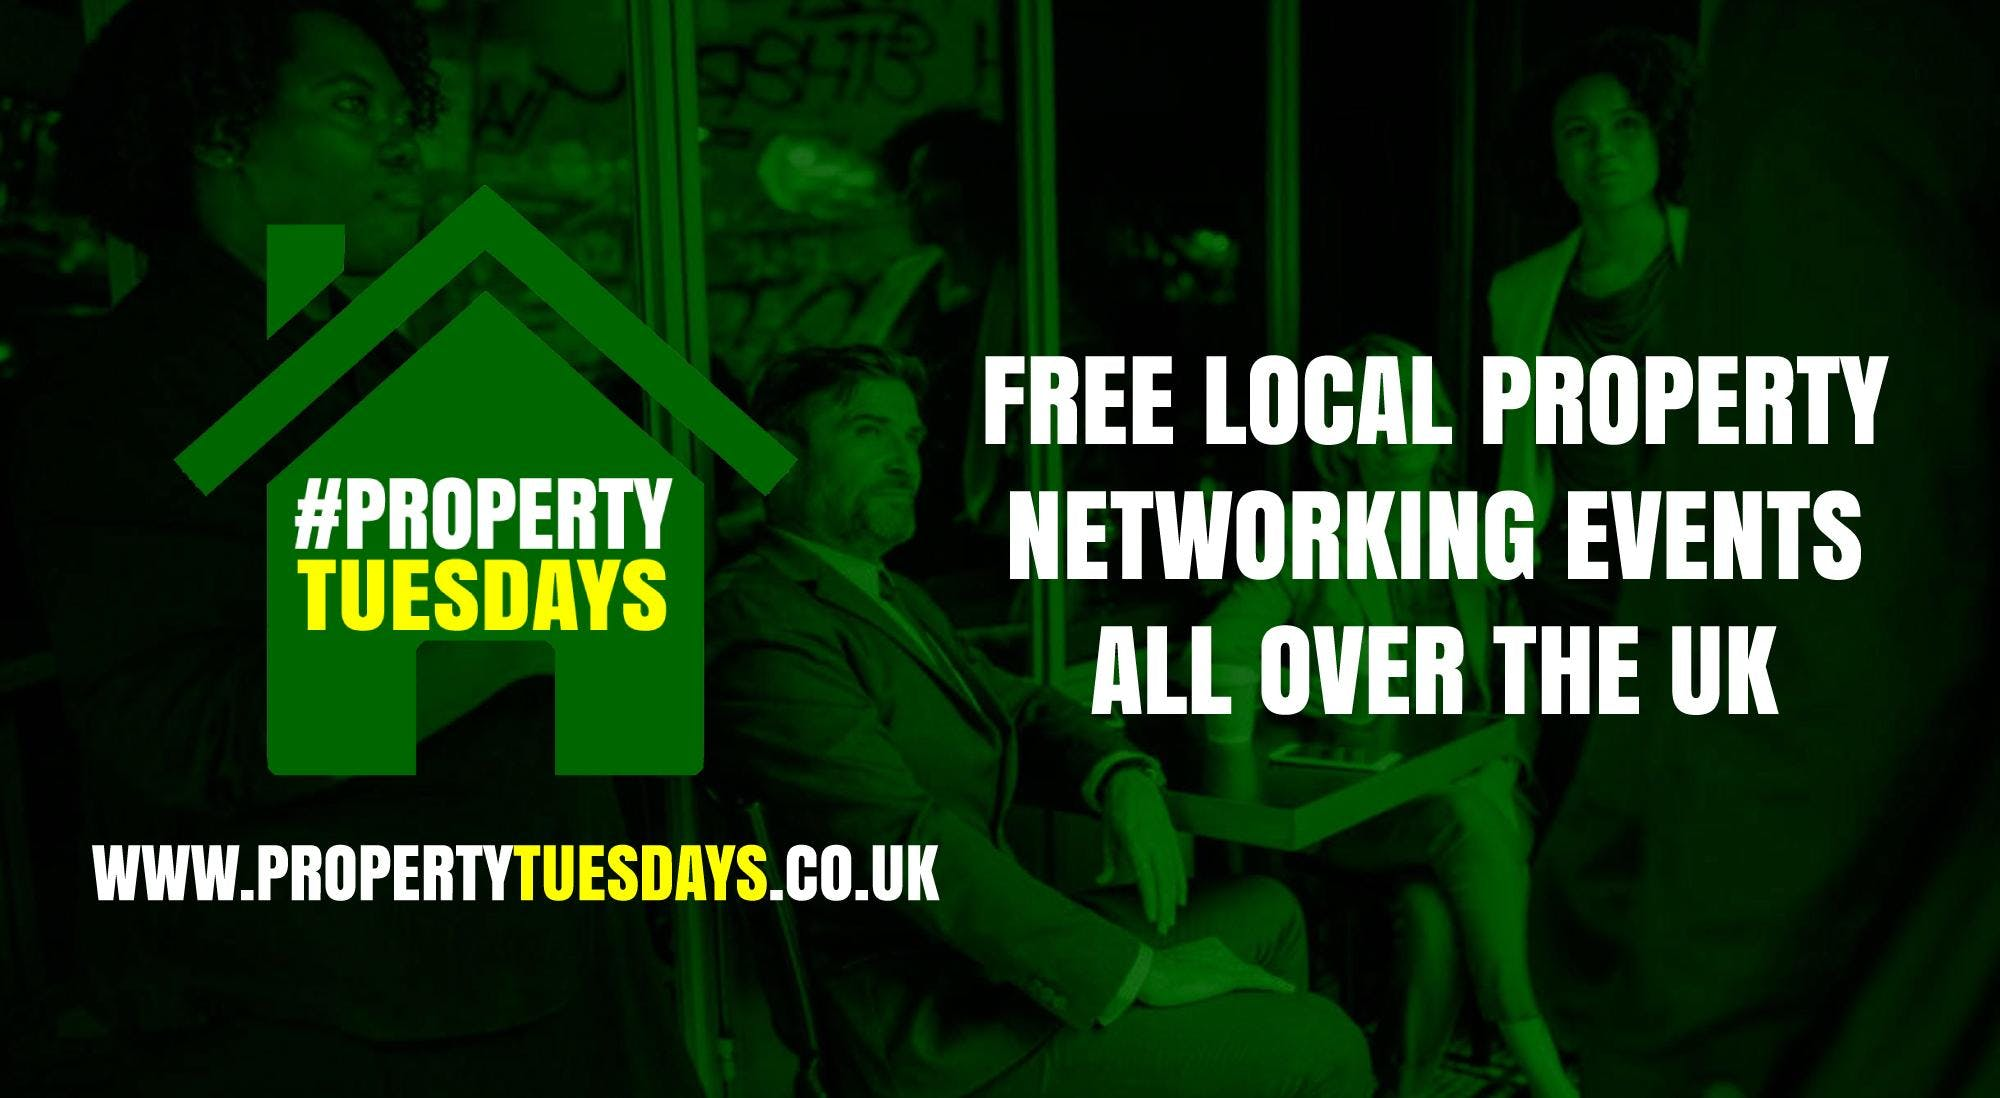 Property Tuesdays! Free property networking event in Oldbury